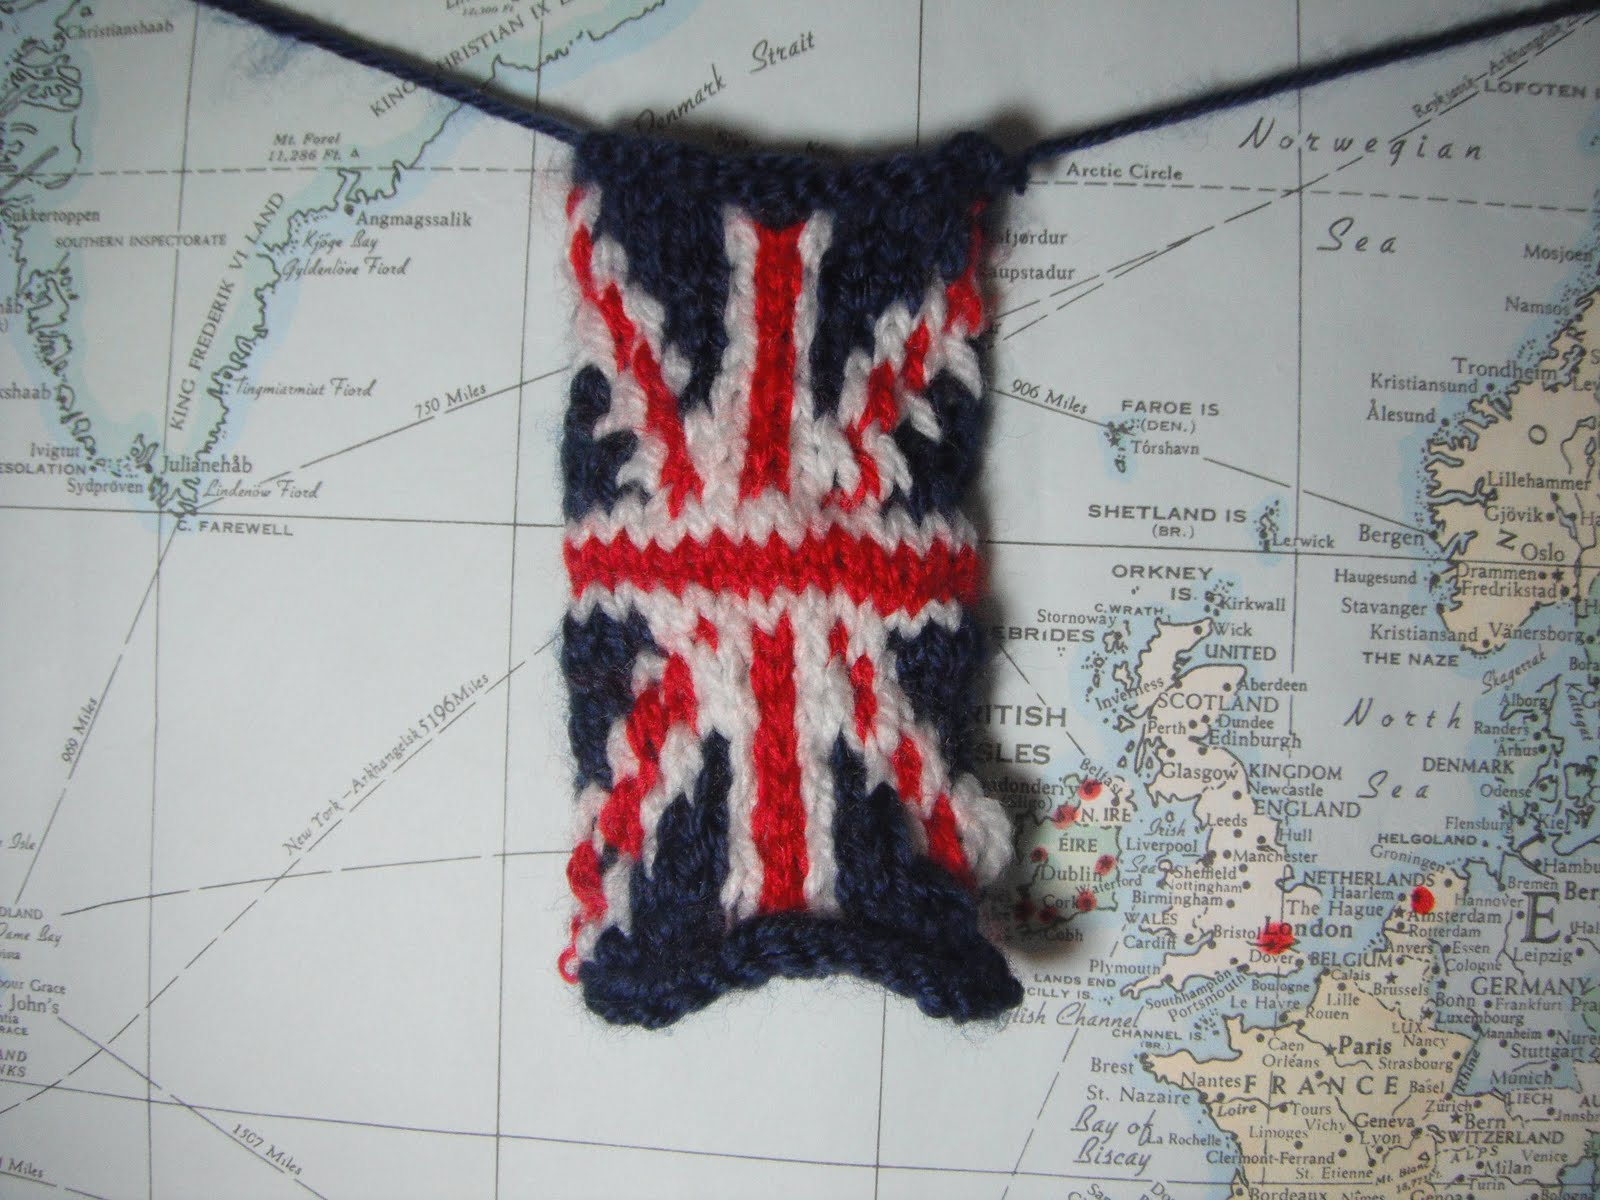 Honey Nutbrowns: Knitting! The Union Jack Flag Pattern